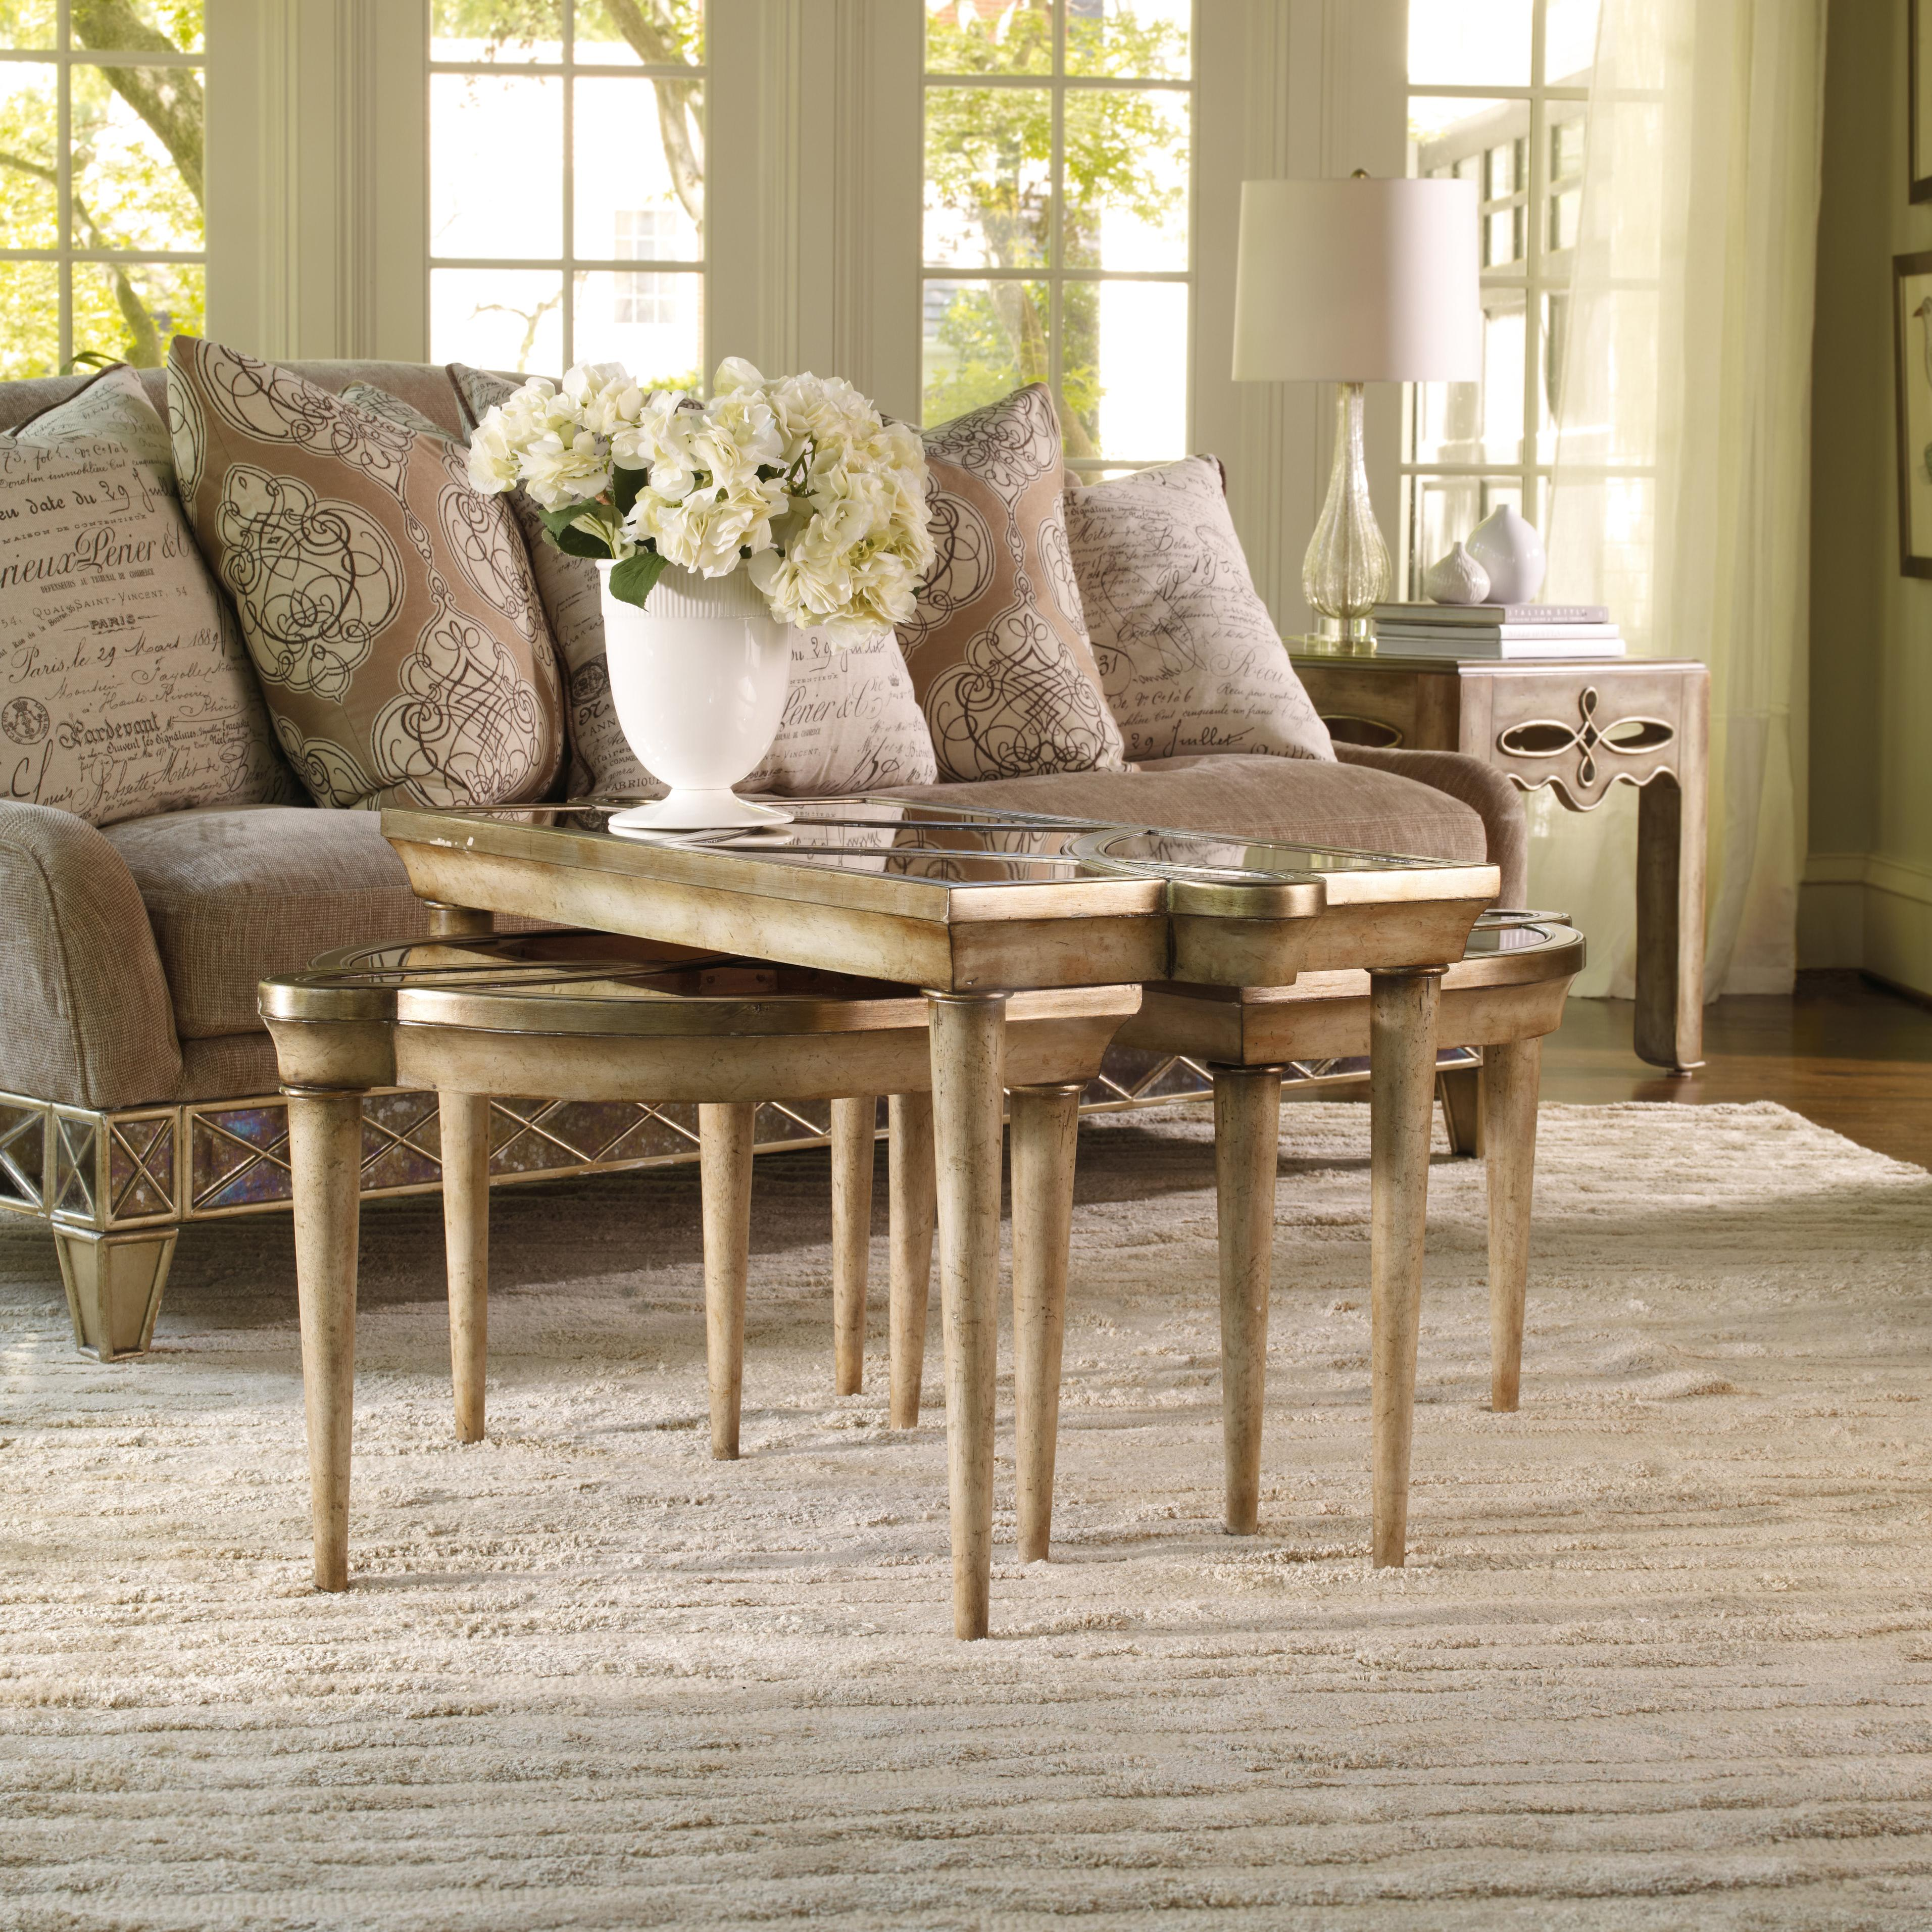 Sanctuary (accents) By Hooker Furniture